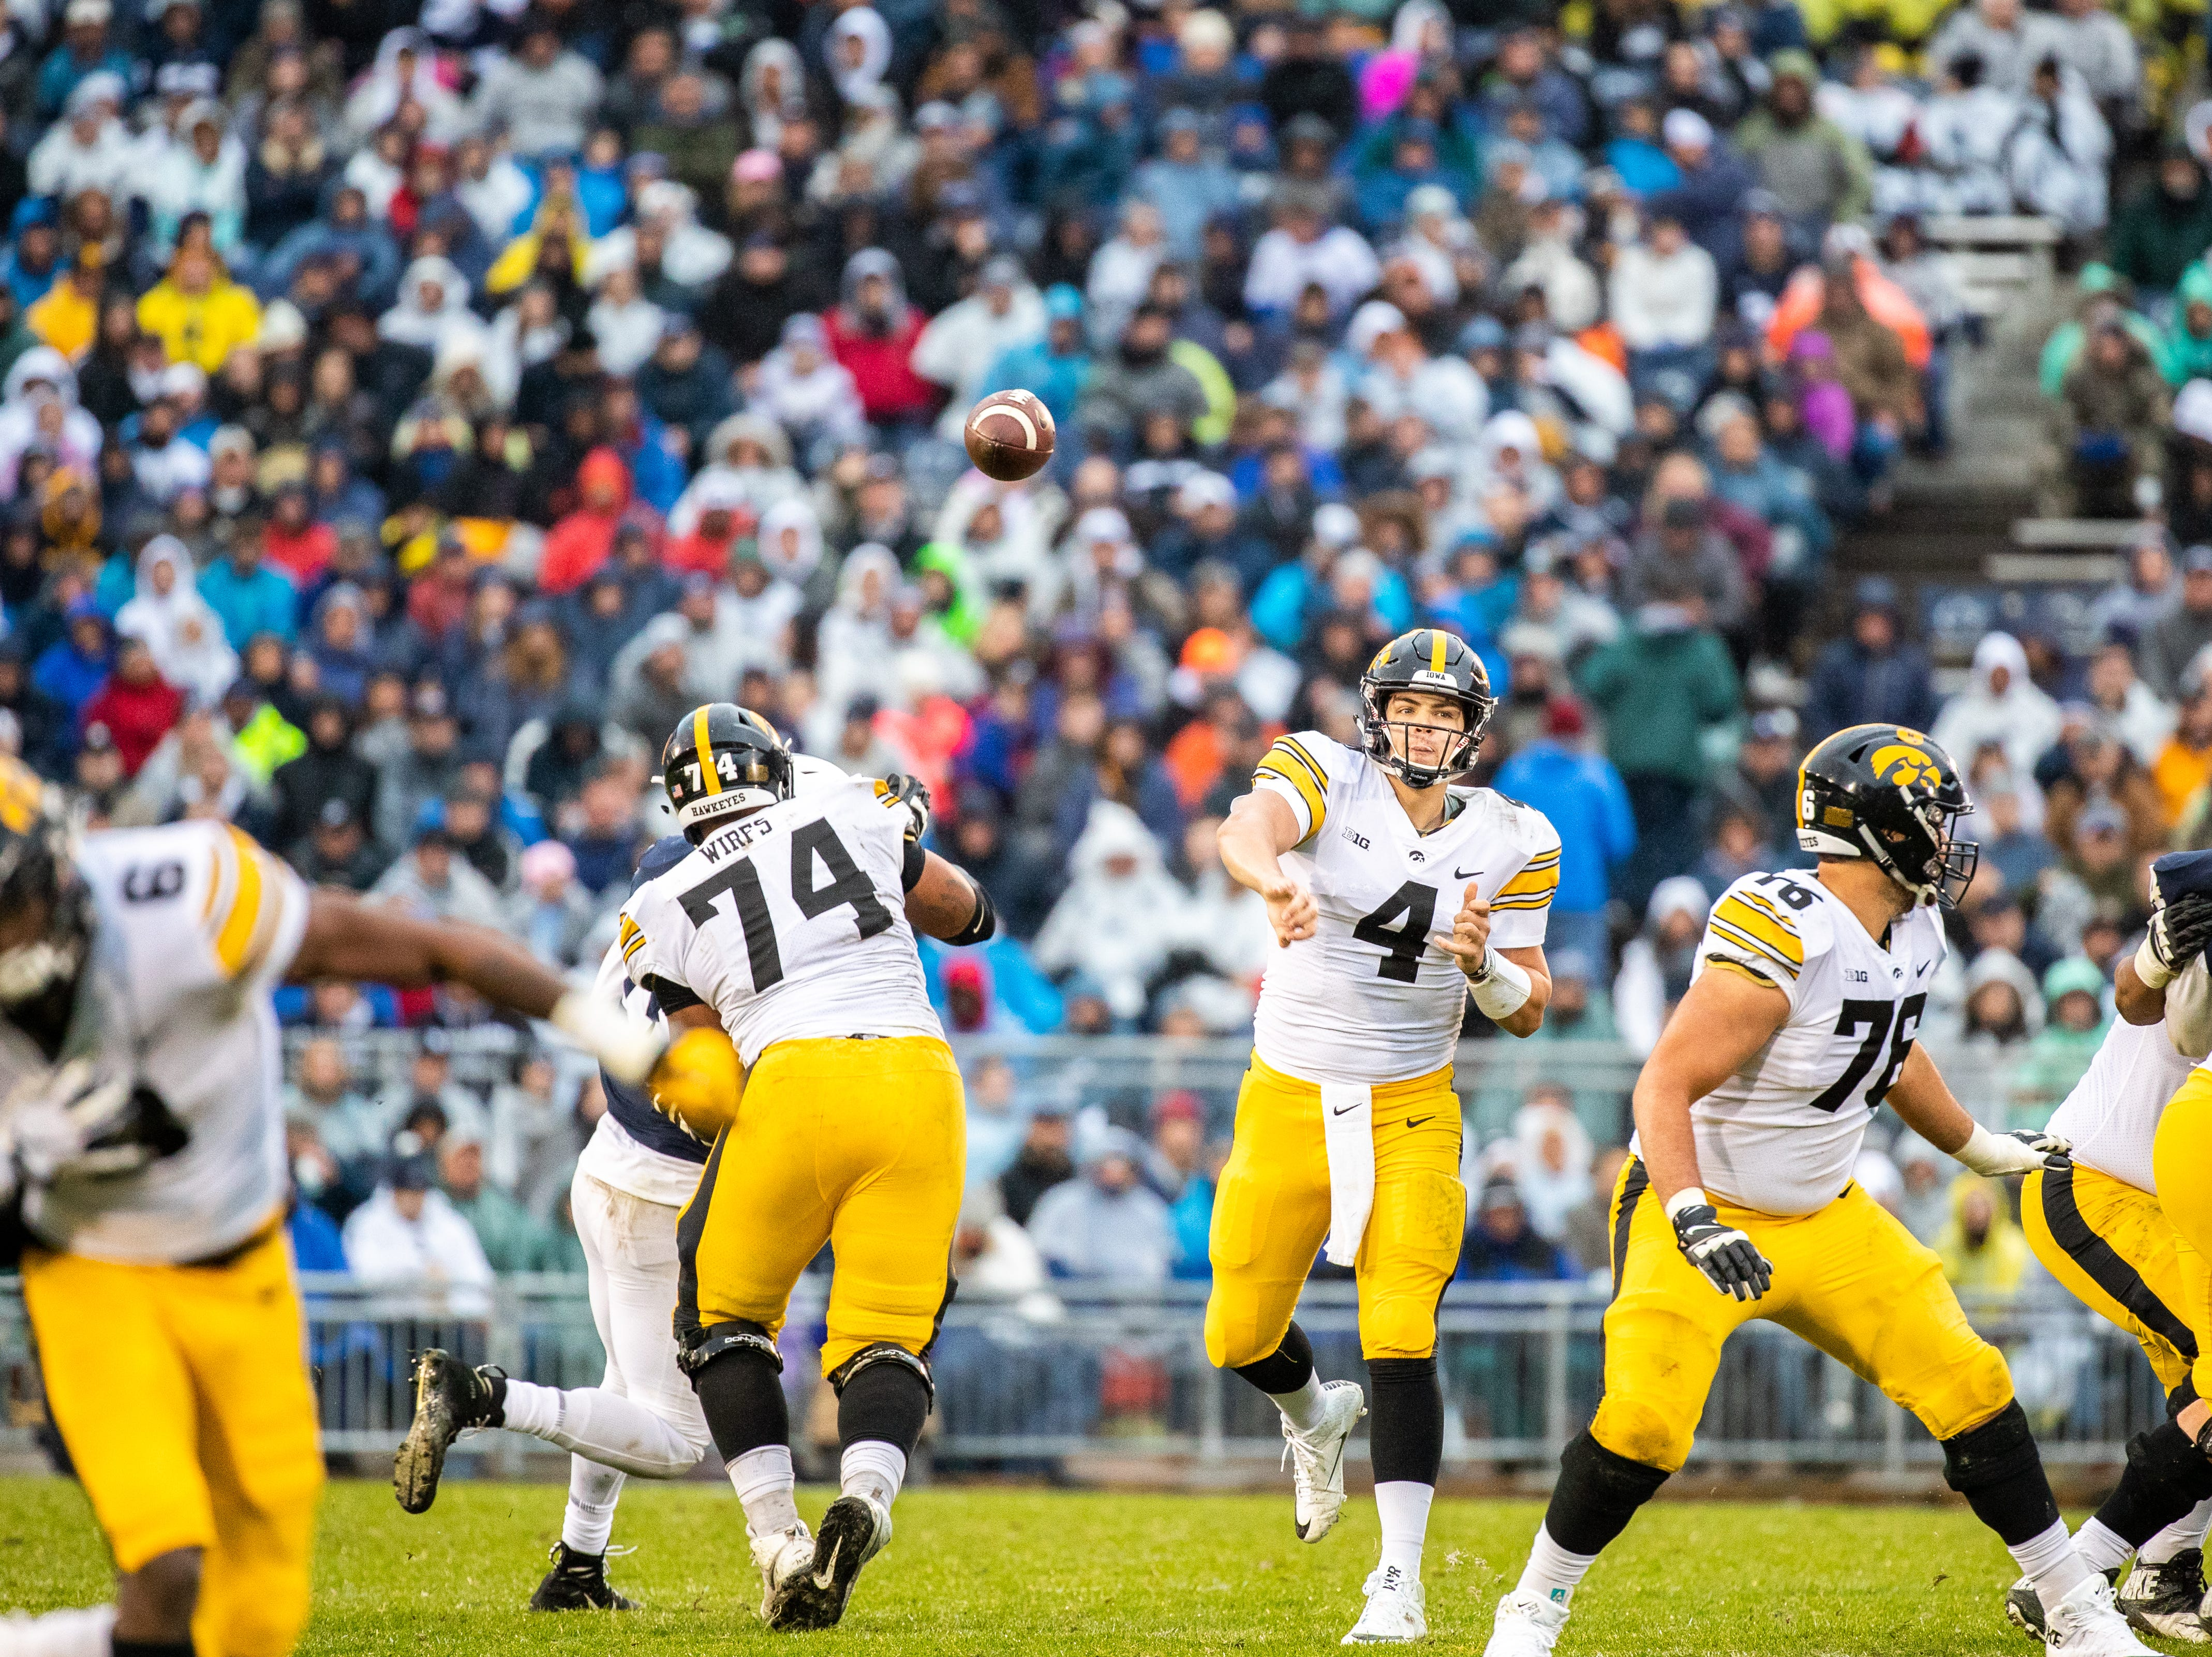 Nate Stanley #4 of the Iowa Hawkeyes throws a pass against the Penn State Nittany Lions at of Beaver Stadium on Saturday, October 27, 2018, in State College, Pennsylvania.outside of Beaver Stadium on Saturday, October 27, 2018, in State College, Pennsylvania.